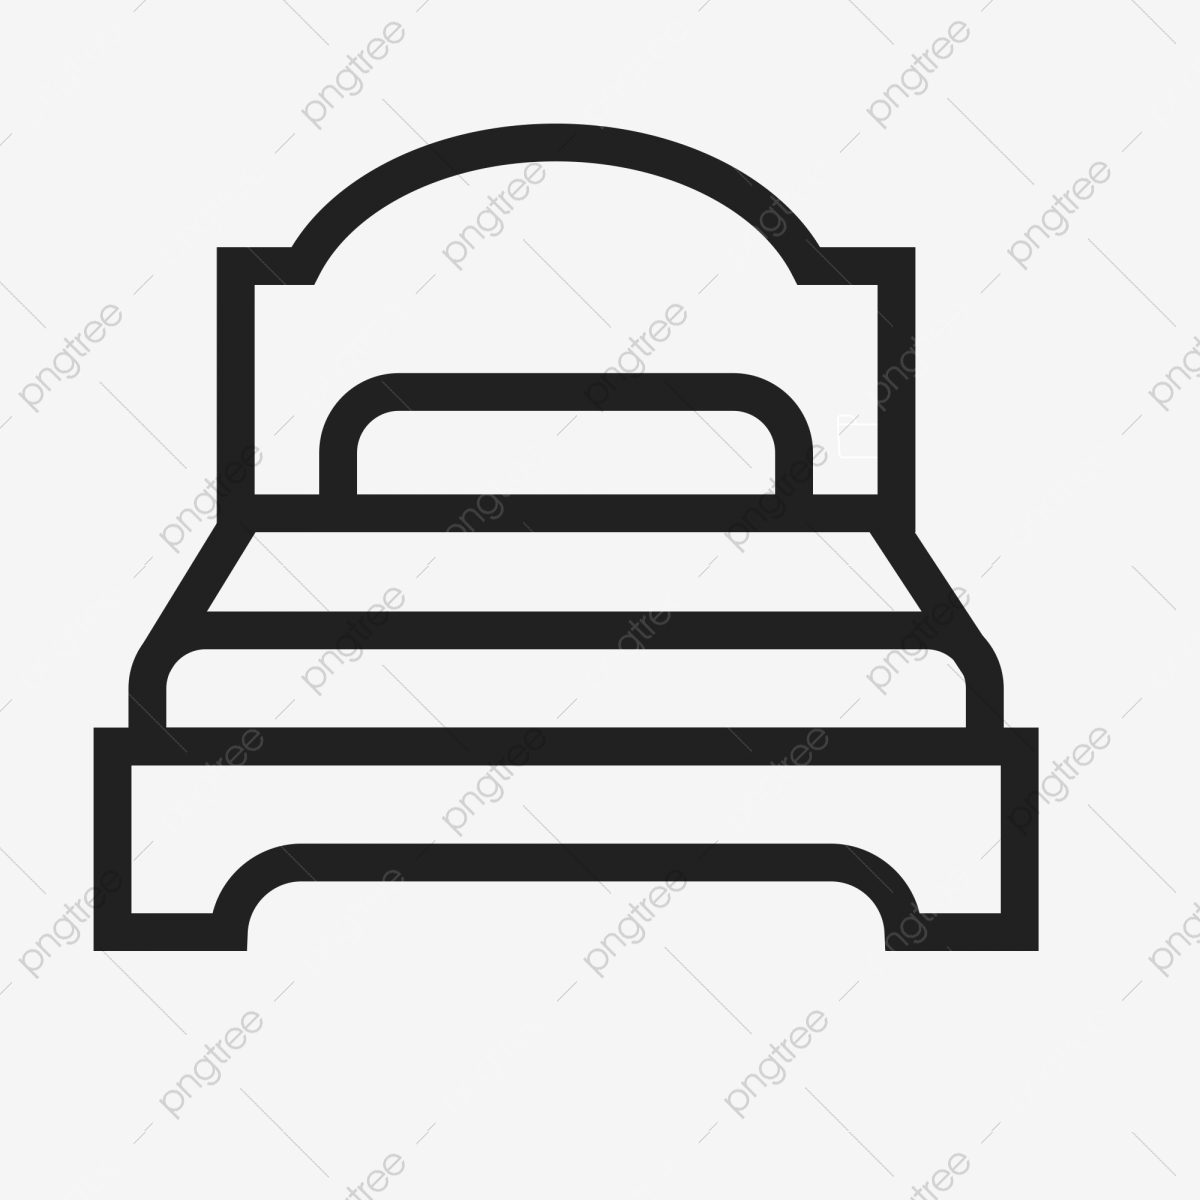 Bed clipart single. Flat ui icon png